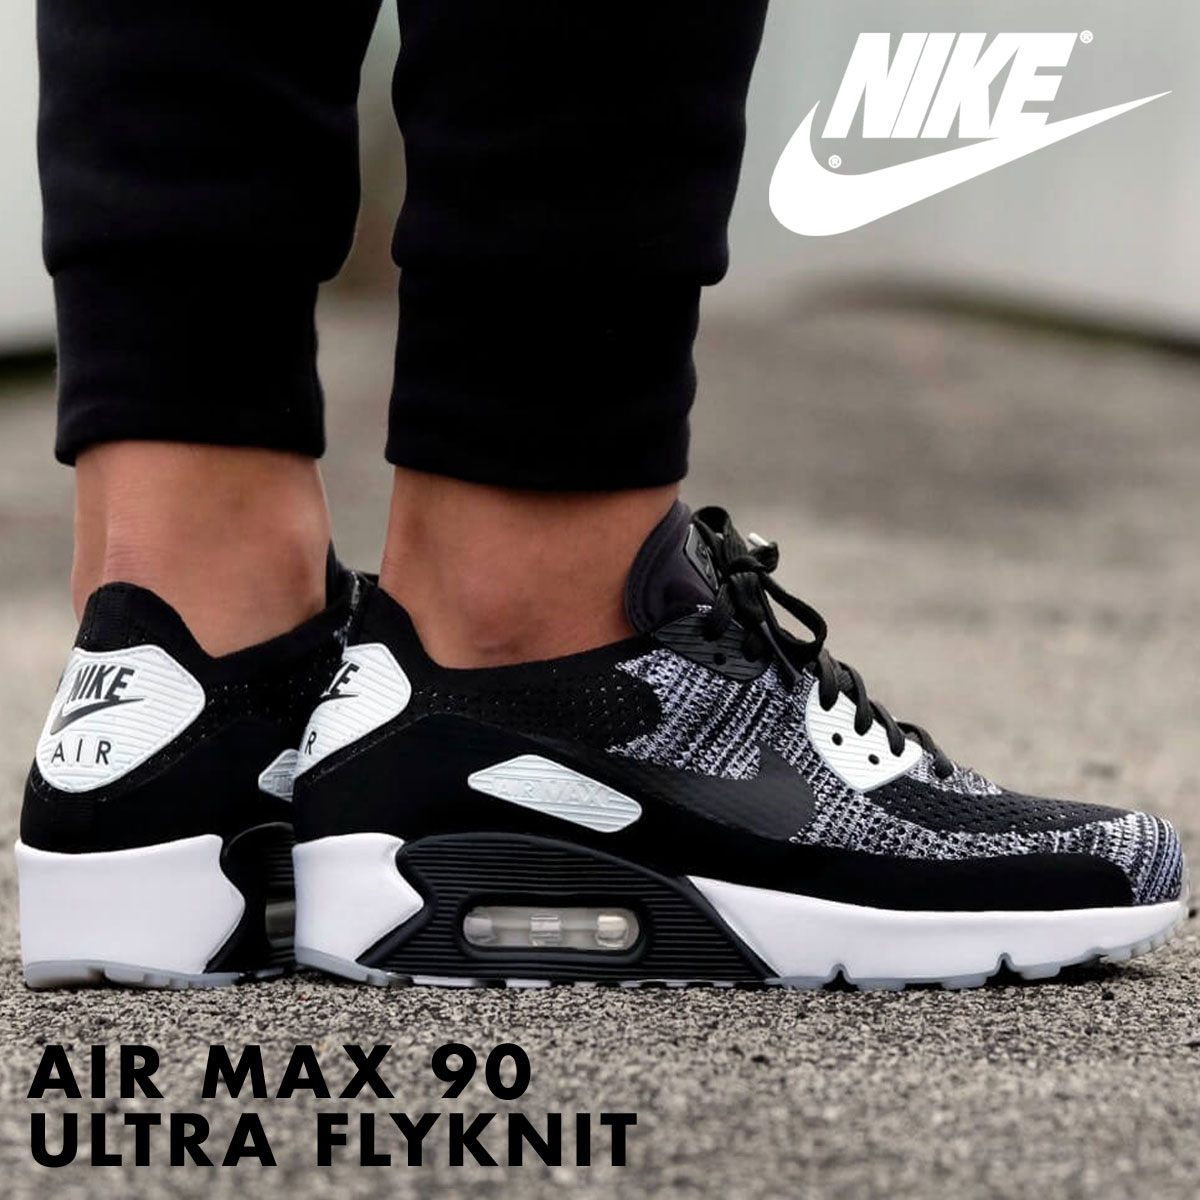 e7f72614bdbf2 Nike NIKE Air Max 90 ultra fly knit sneakers AIR MAX 90 ULTRA 2.0 FLYKNIT  875